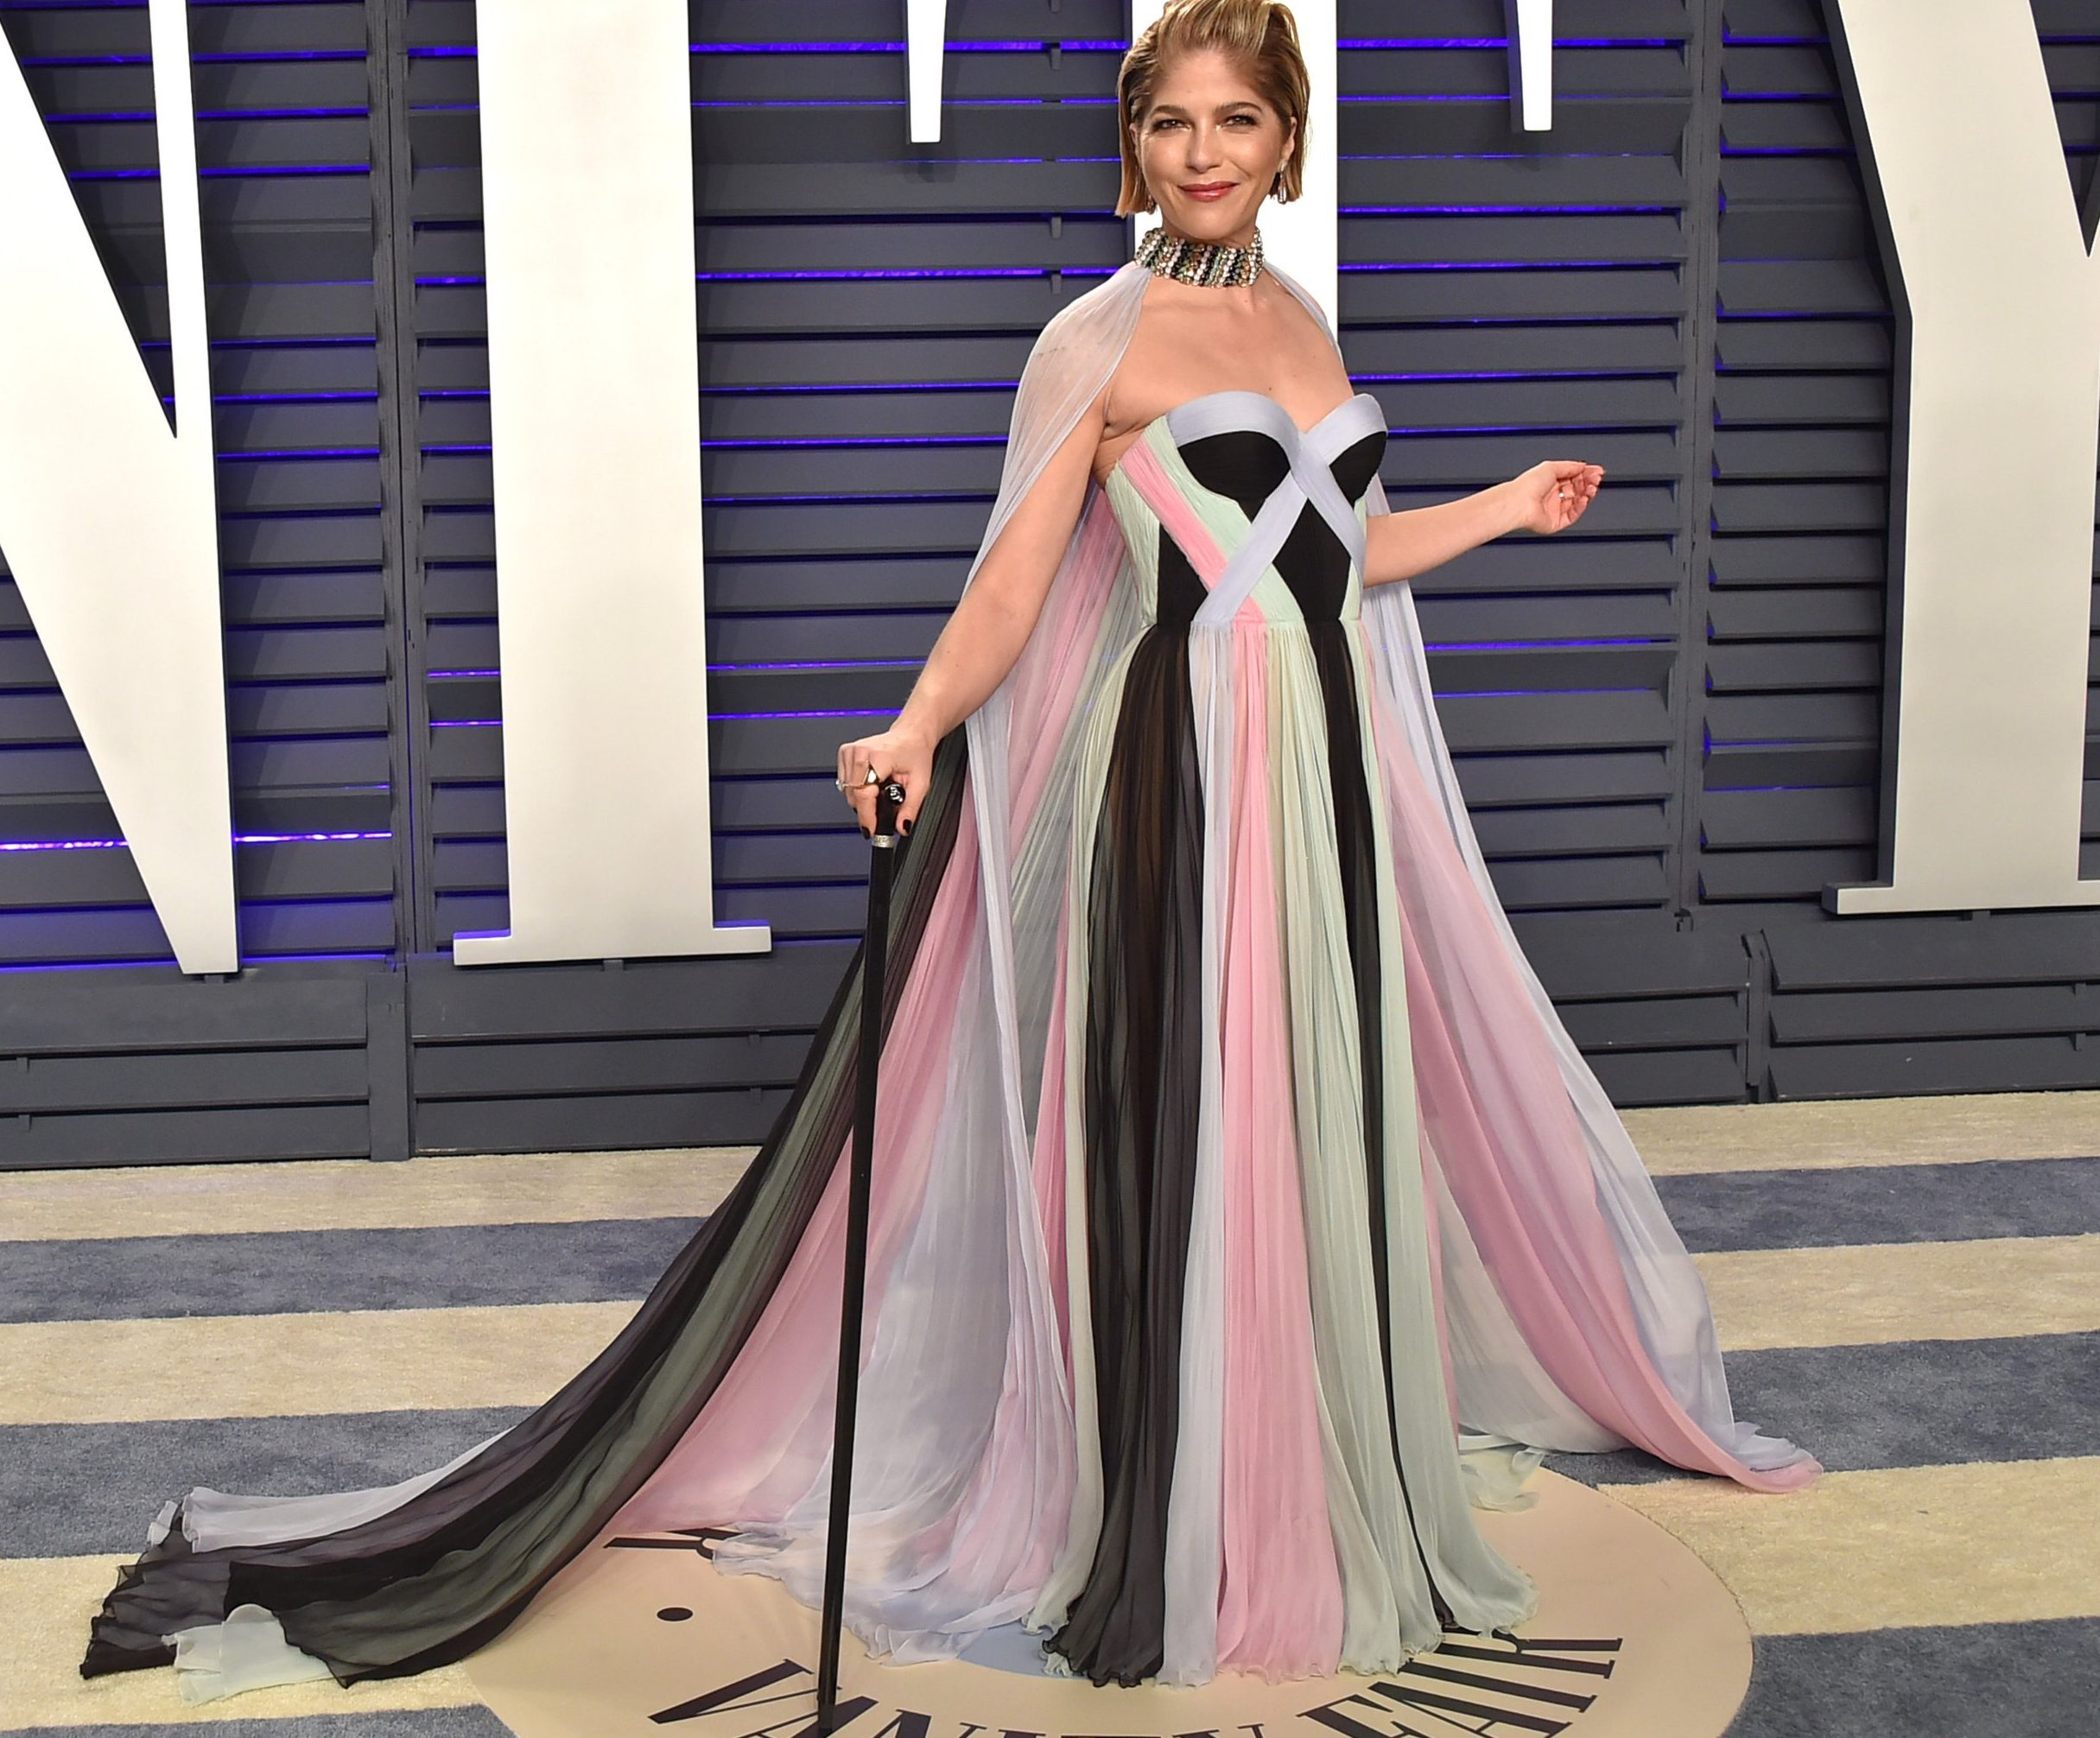 Selma Blair attending the 2019 Vanity Fair Oscar Party held at the Wallis Annenberg Center for the Performing Arts in Beverly Hills, California